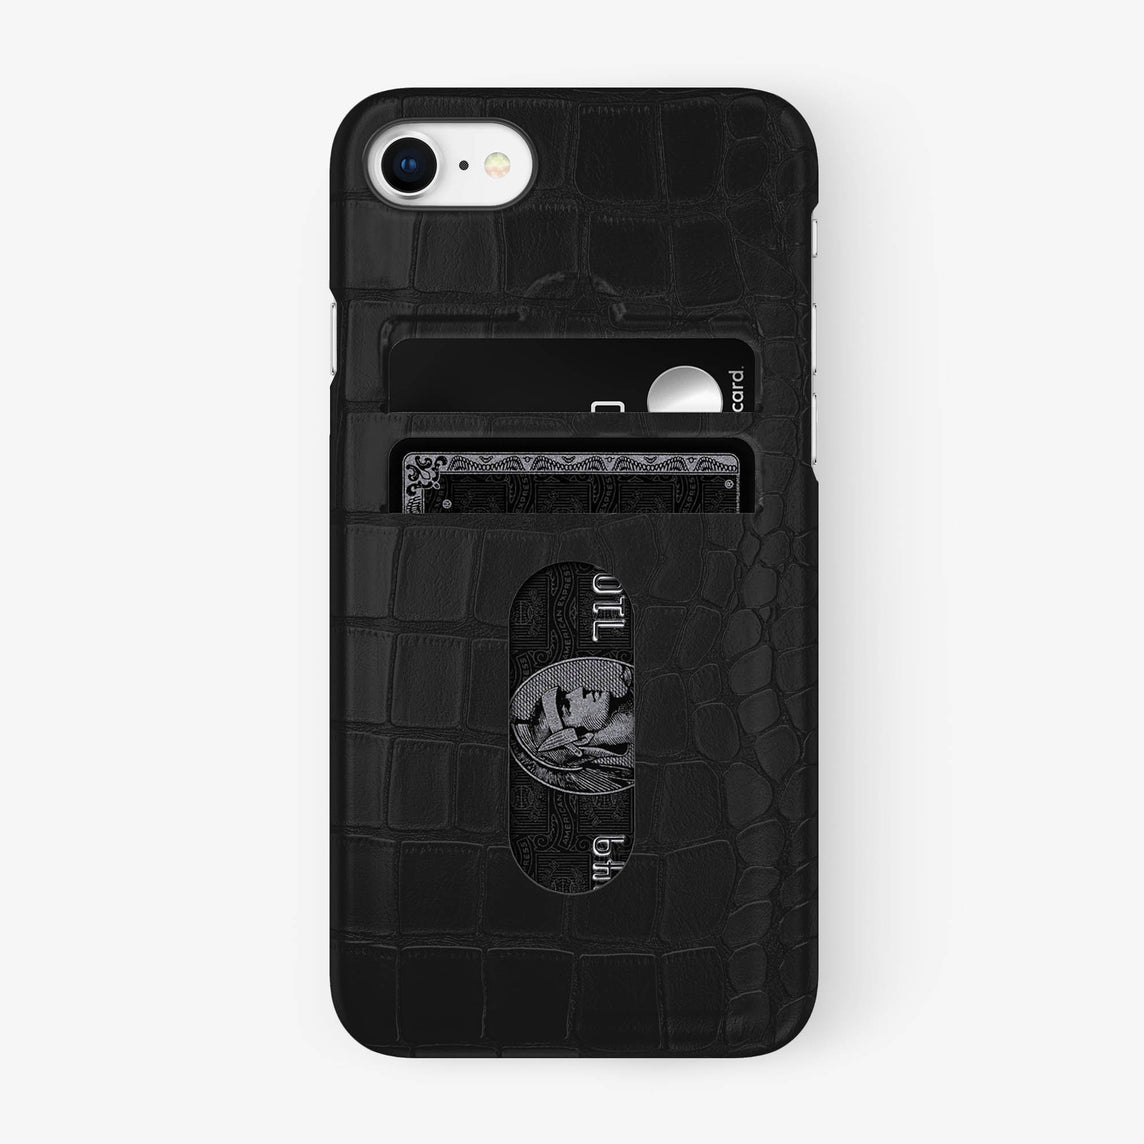 Alligator Card Holder Case iPhone 7/8 | Phantom Black - Black - Hadoro